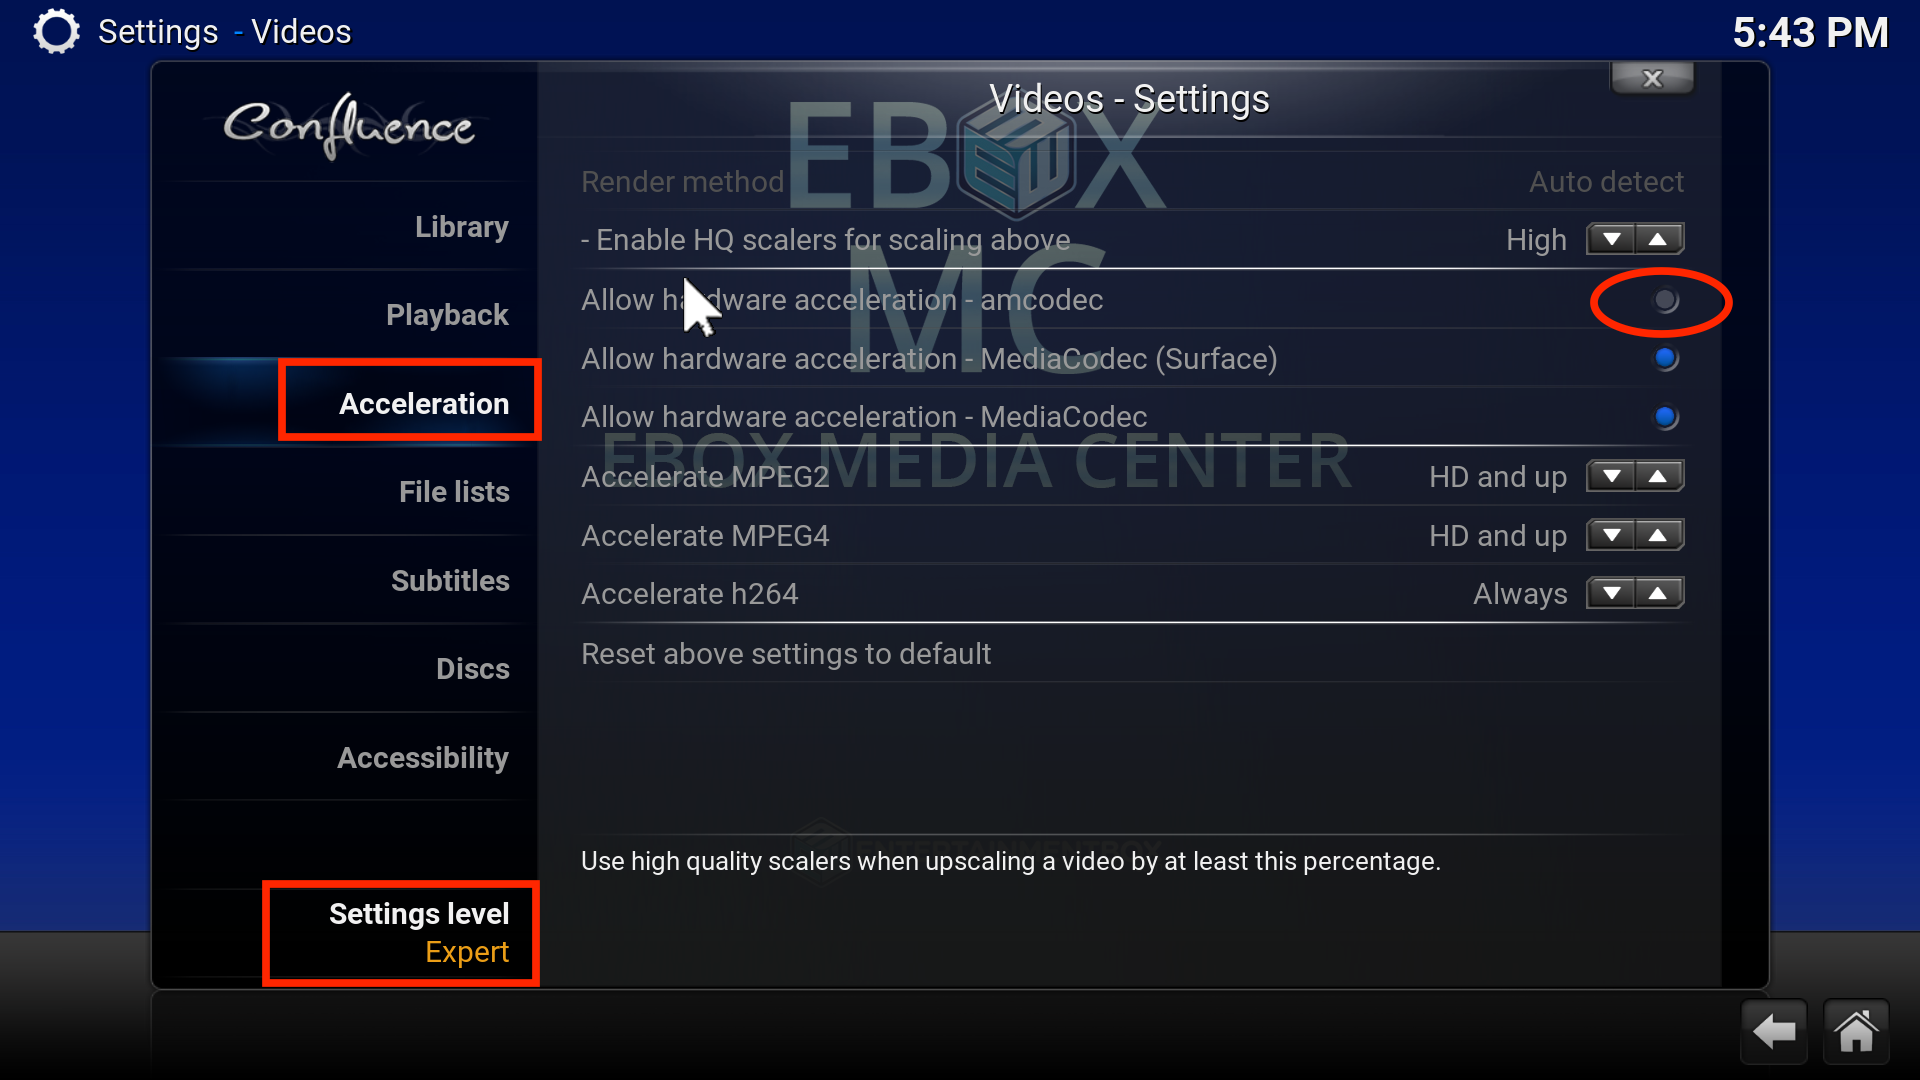 EBOX MC hardware acceleration settings